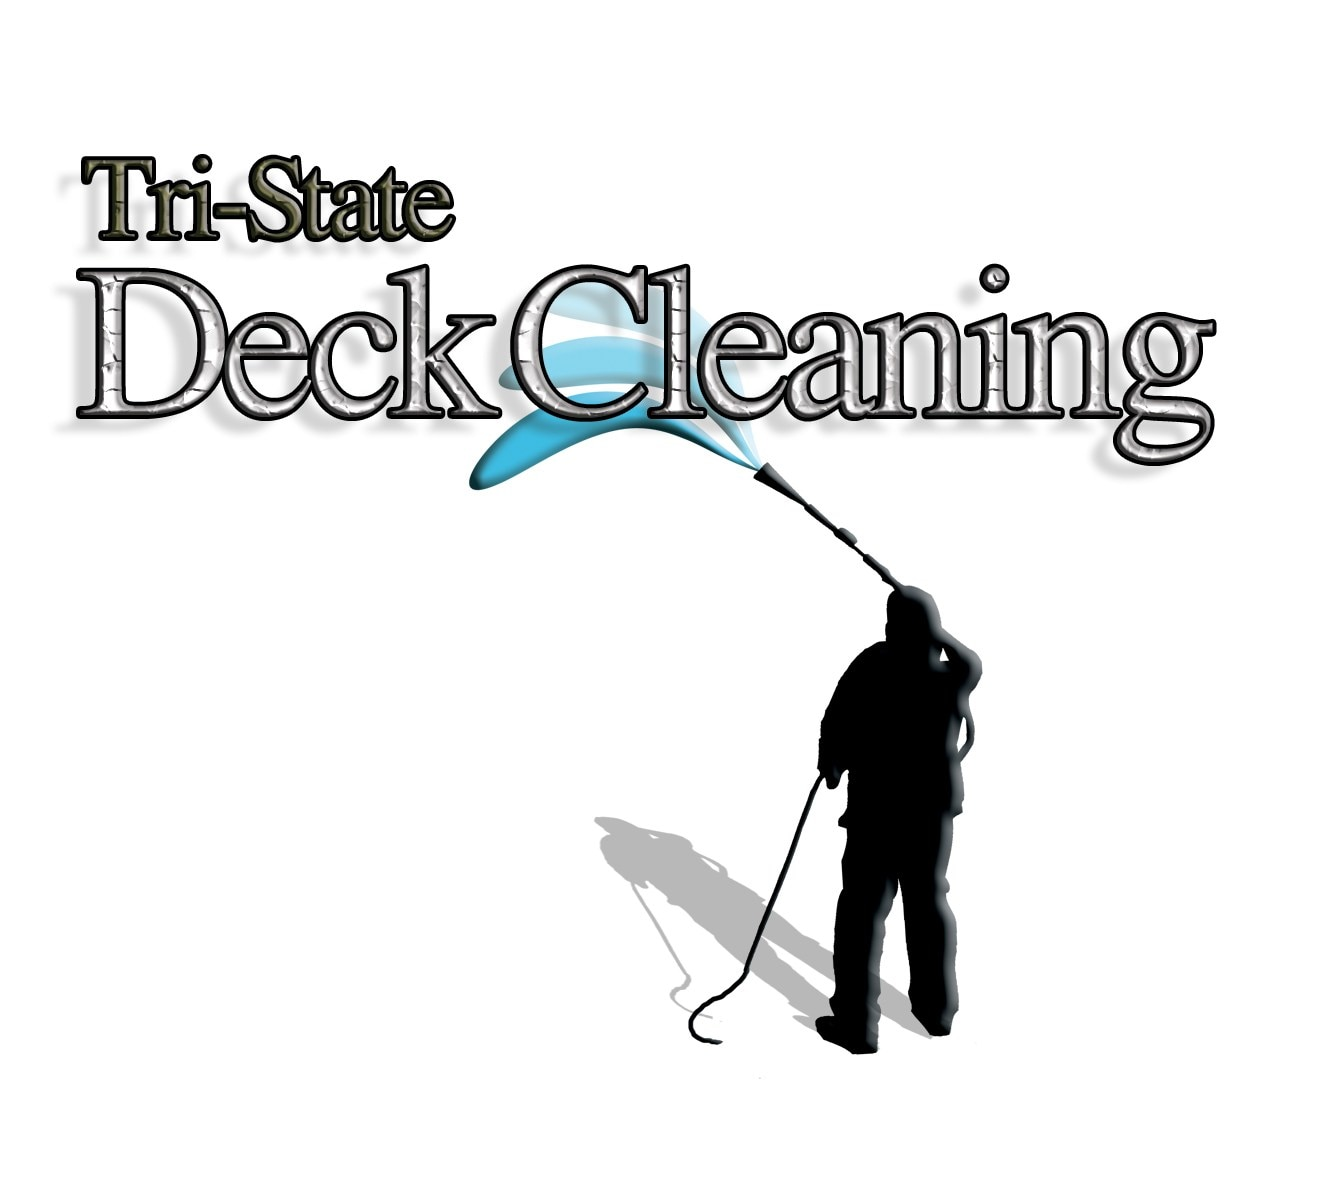 Tri-state Deck Cleaning